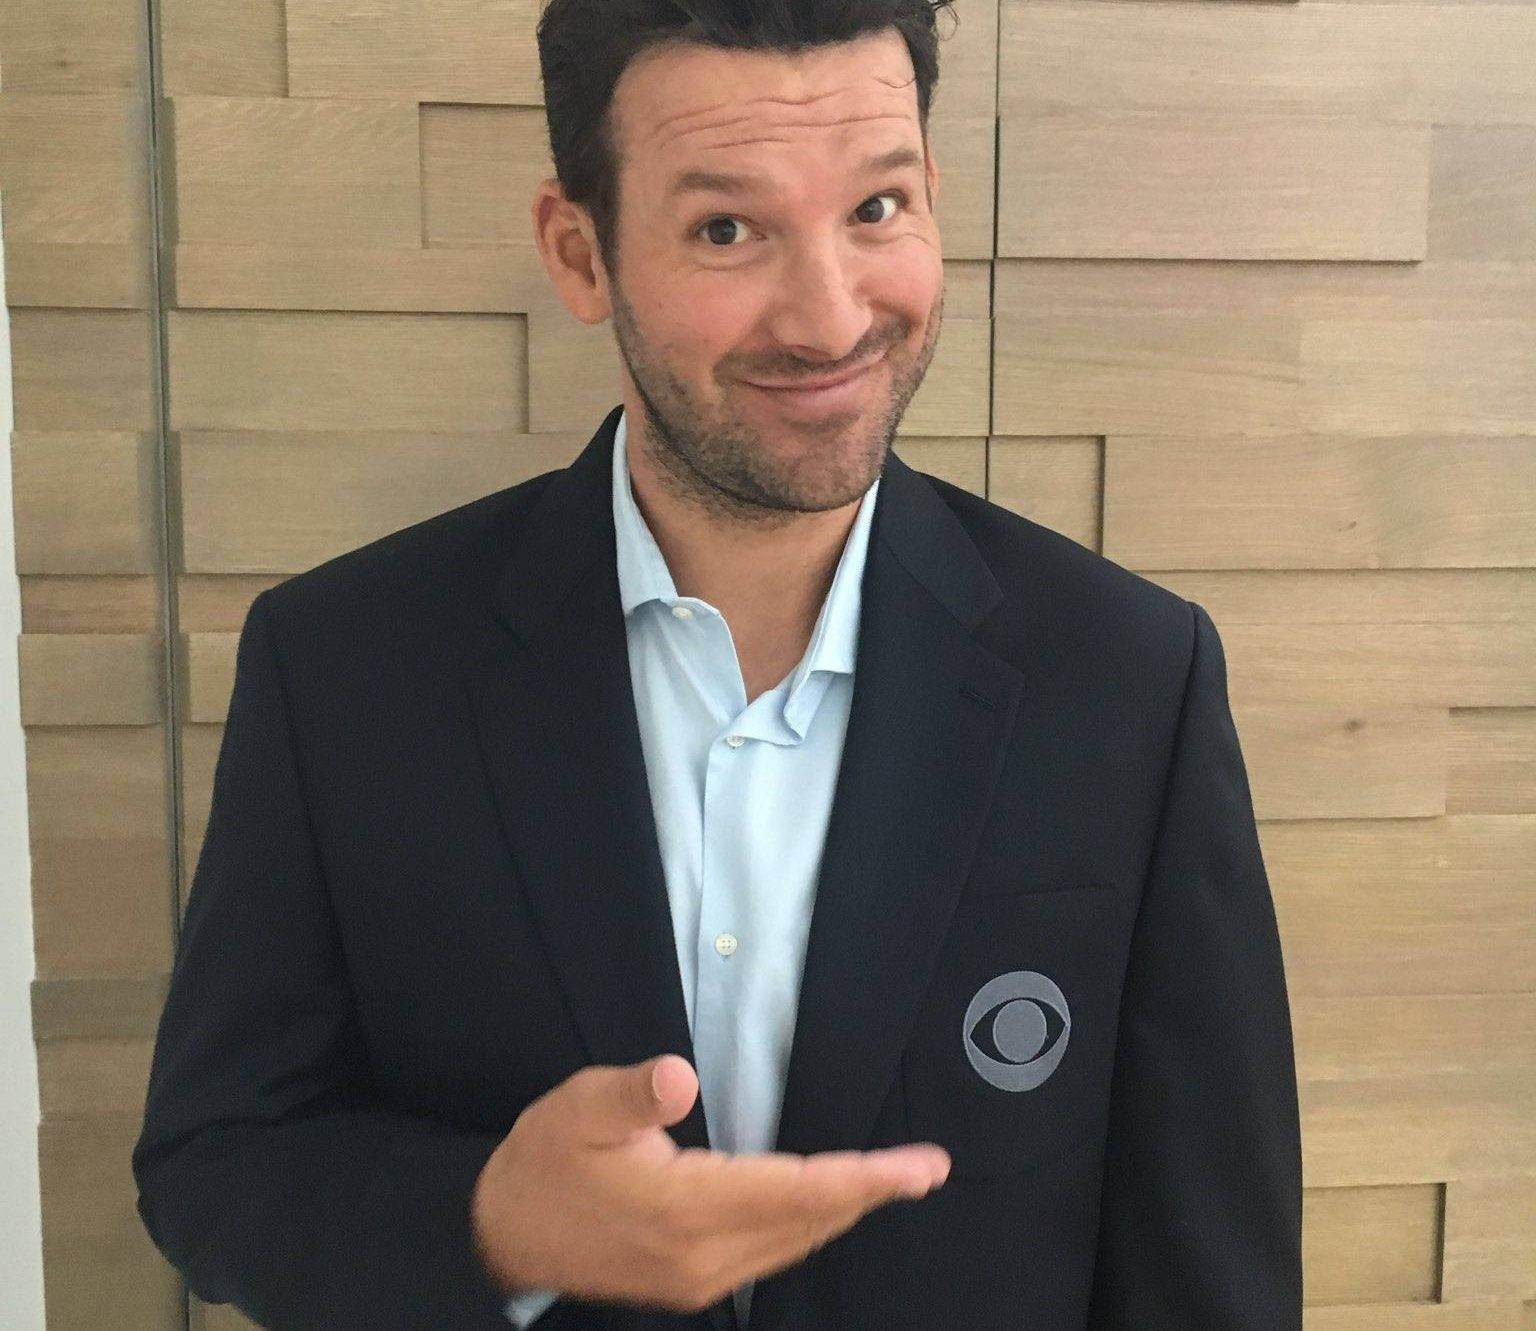 Tony Romo Trades In His Jersey For a CBS Sports Blazer